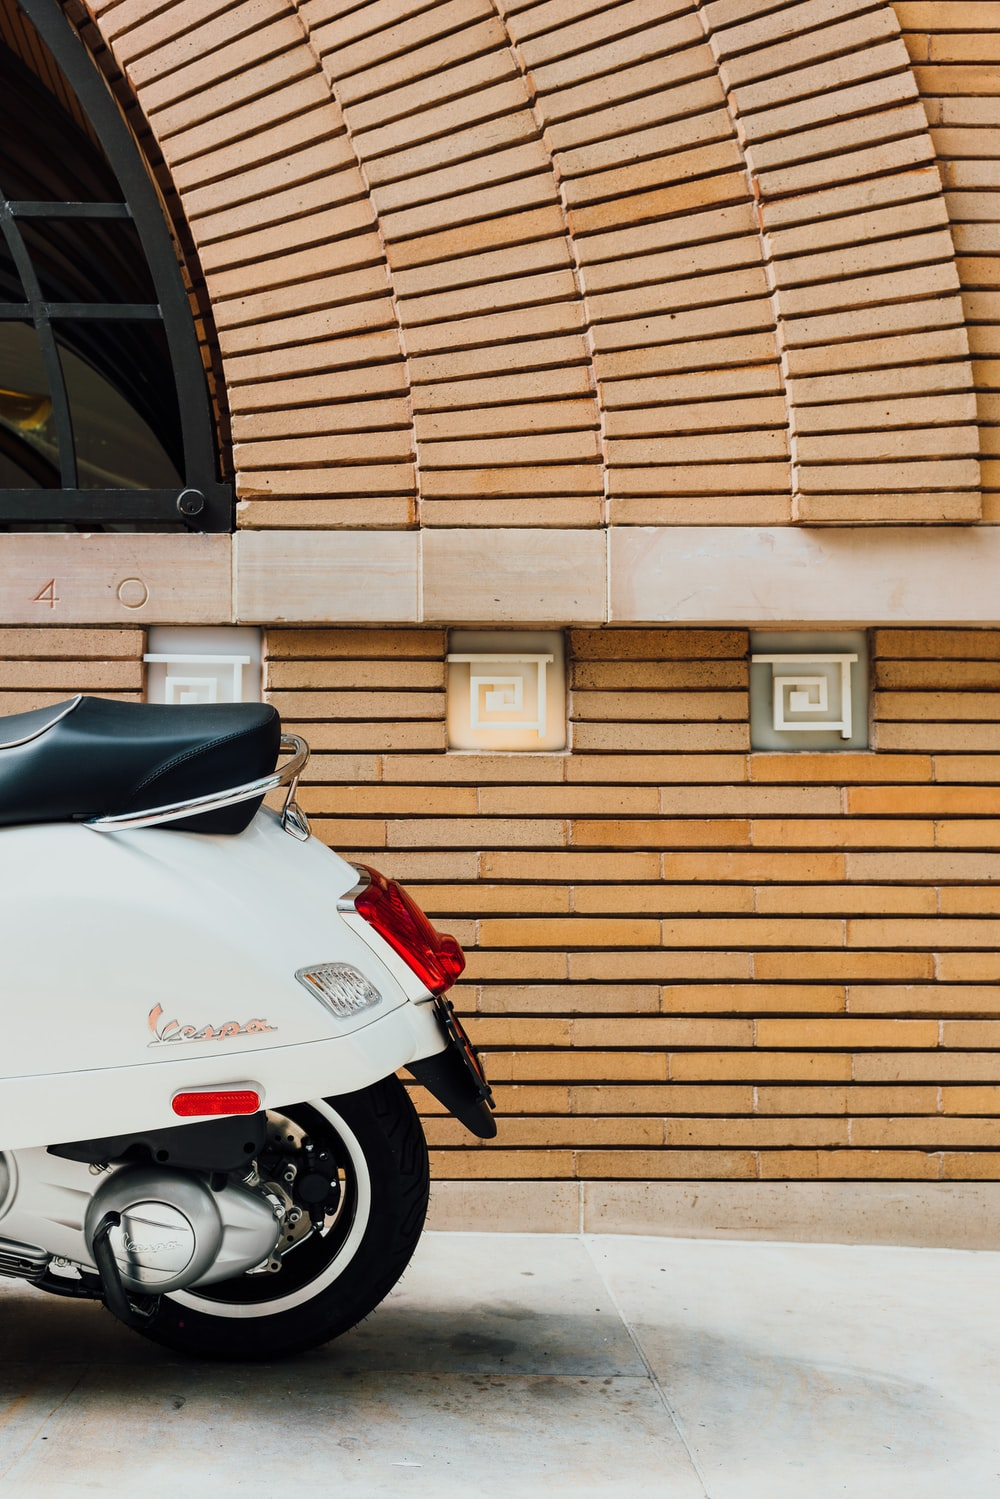 white motorcycle parked beside brown wall